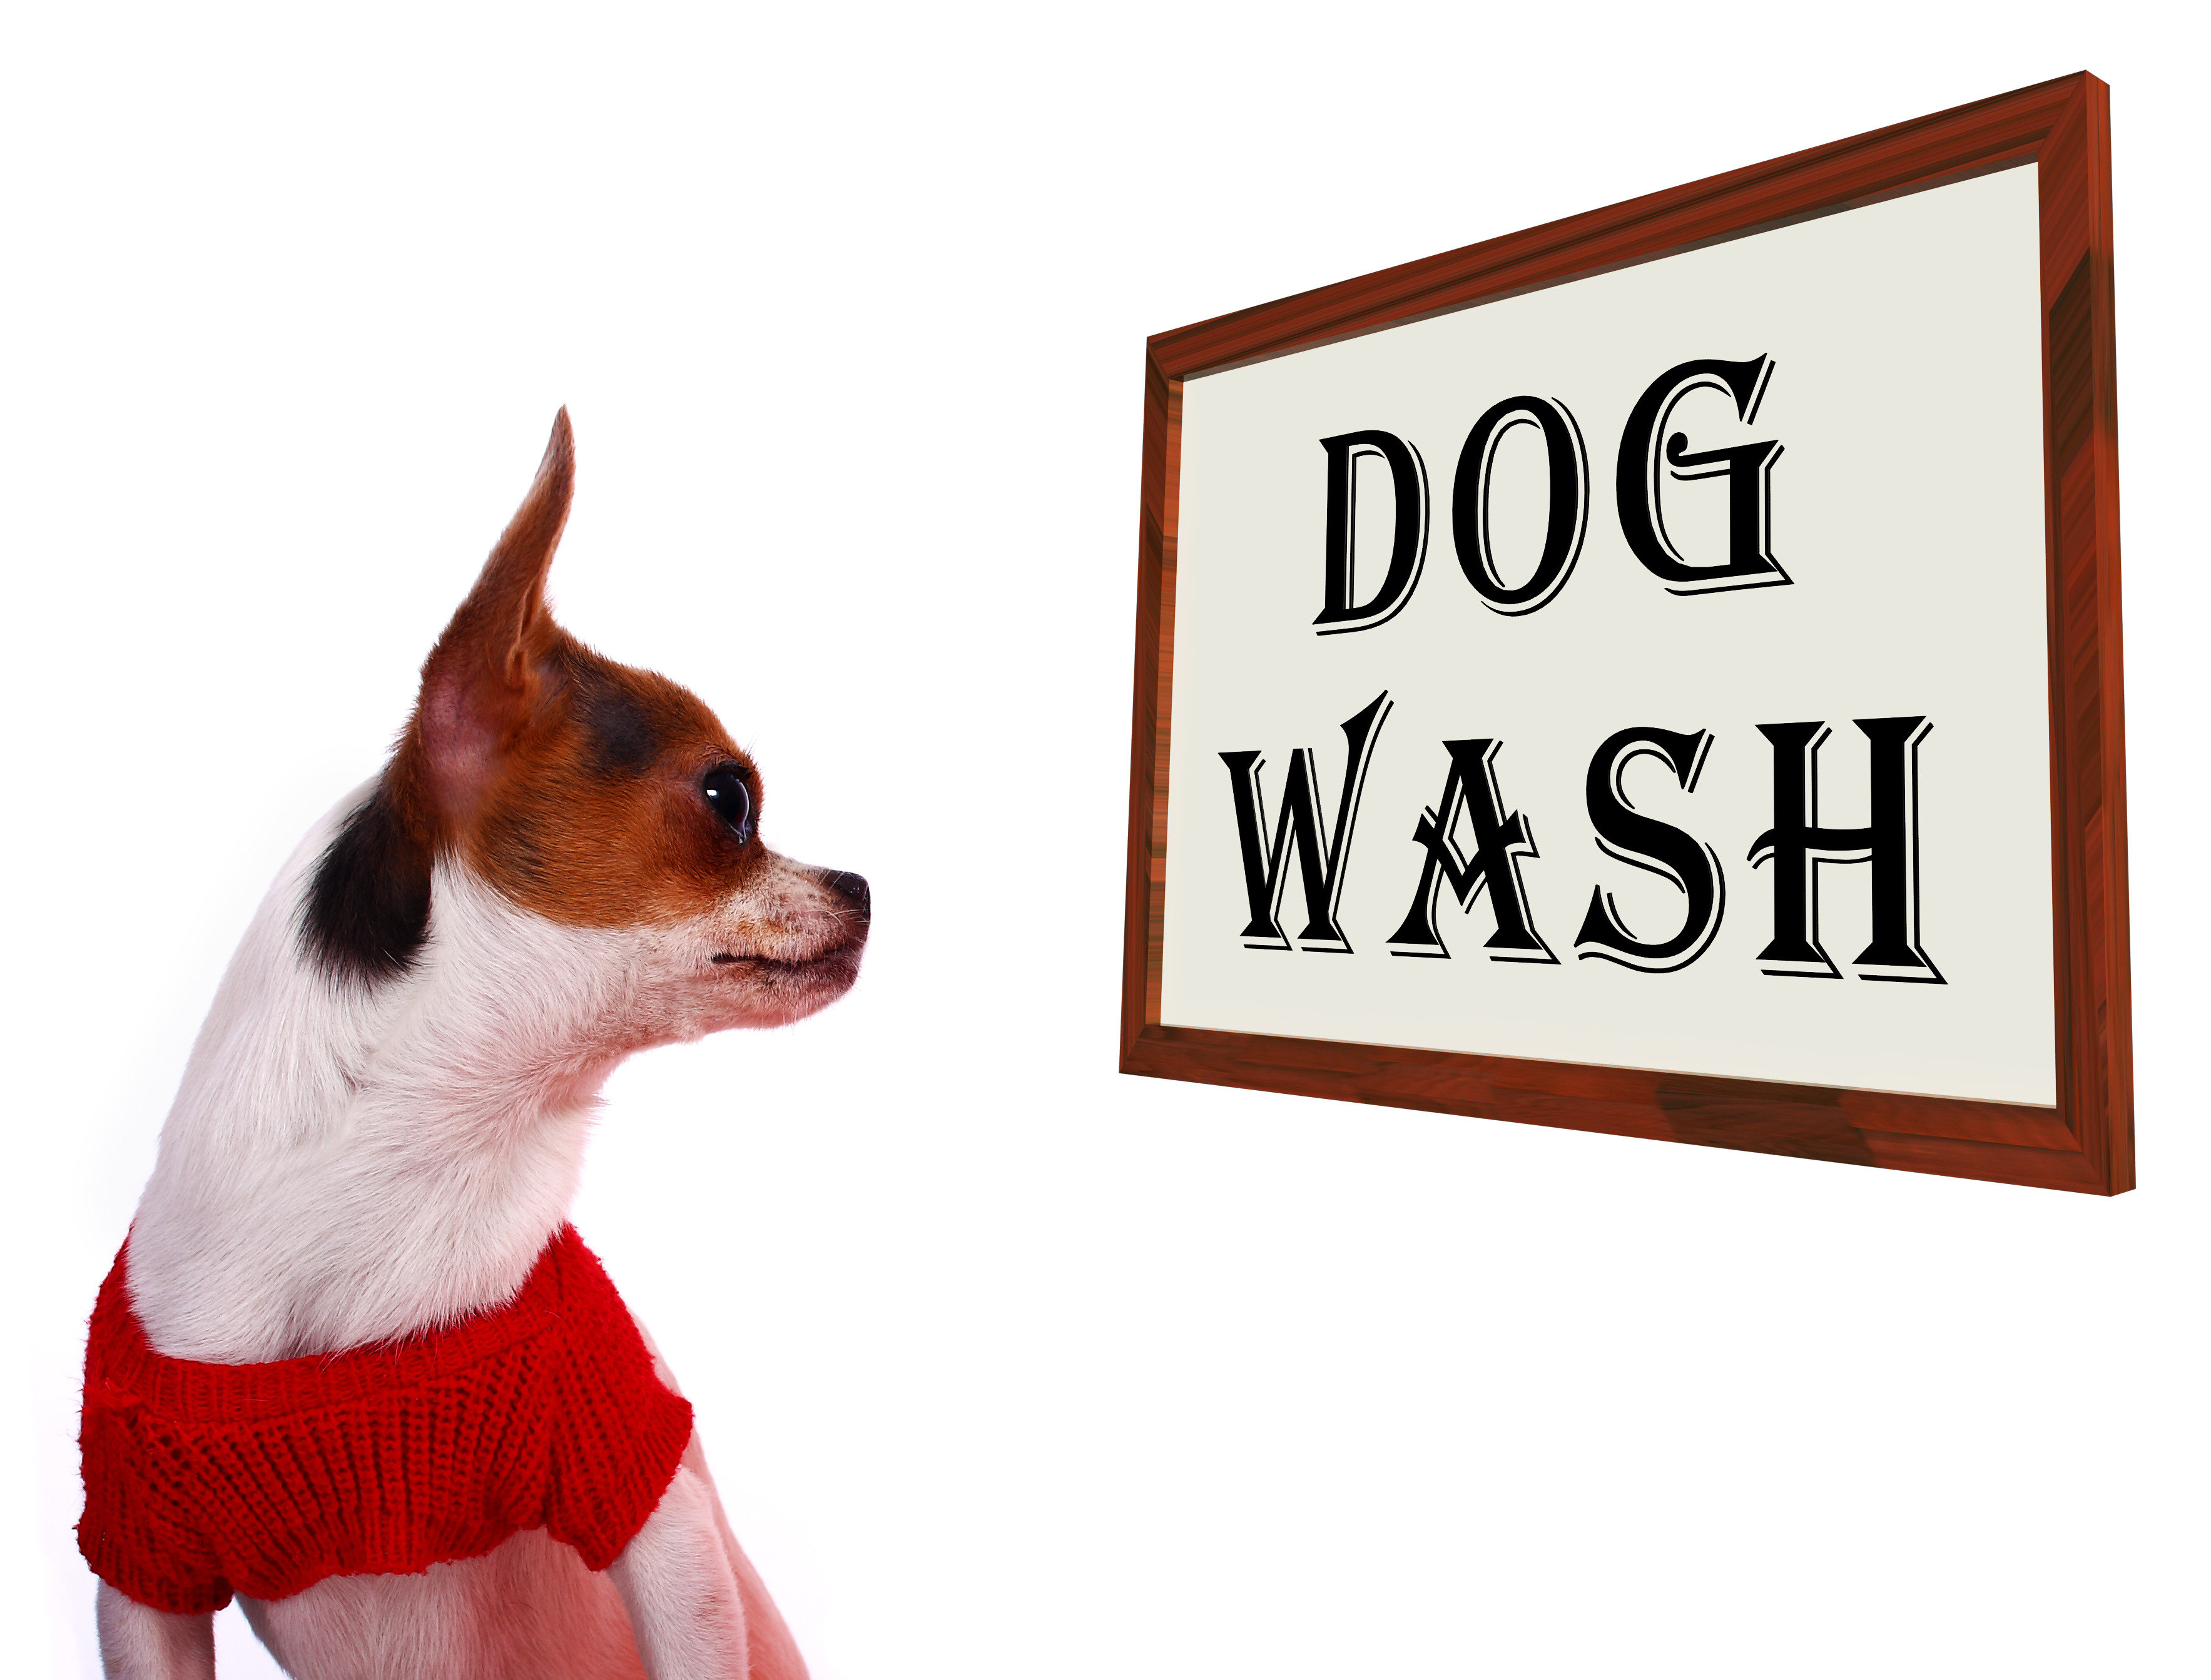 Dog Wash Sign Showing Canine Grooming Washing Or Shampoo